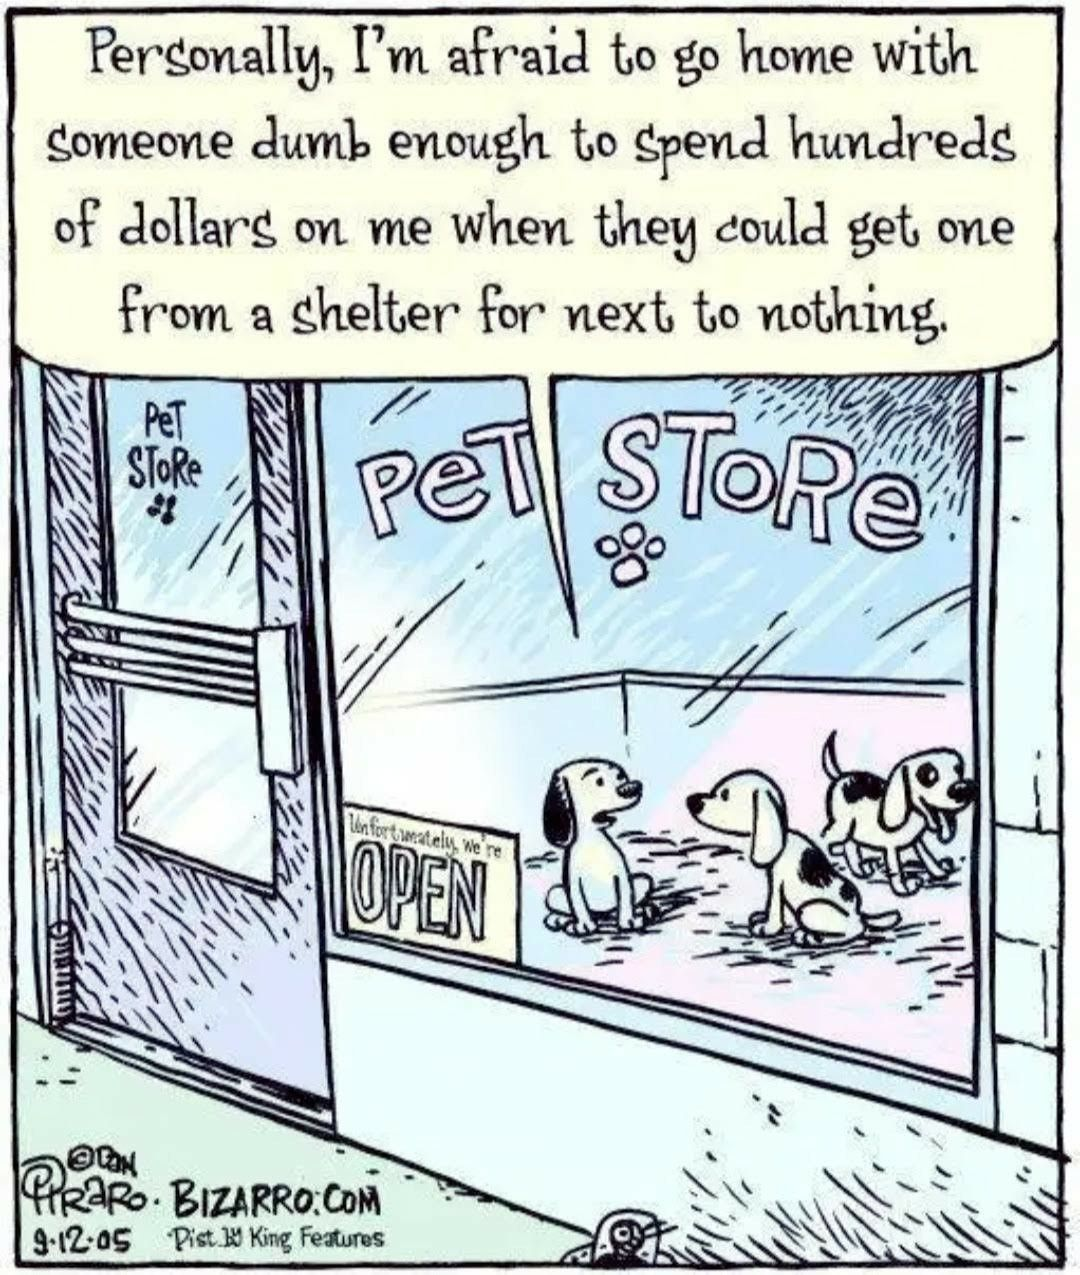 Pin By Carol On Worth A Thousand Words Pet Store Pets Buy Puppies